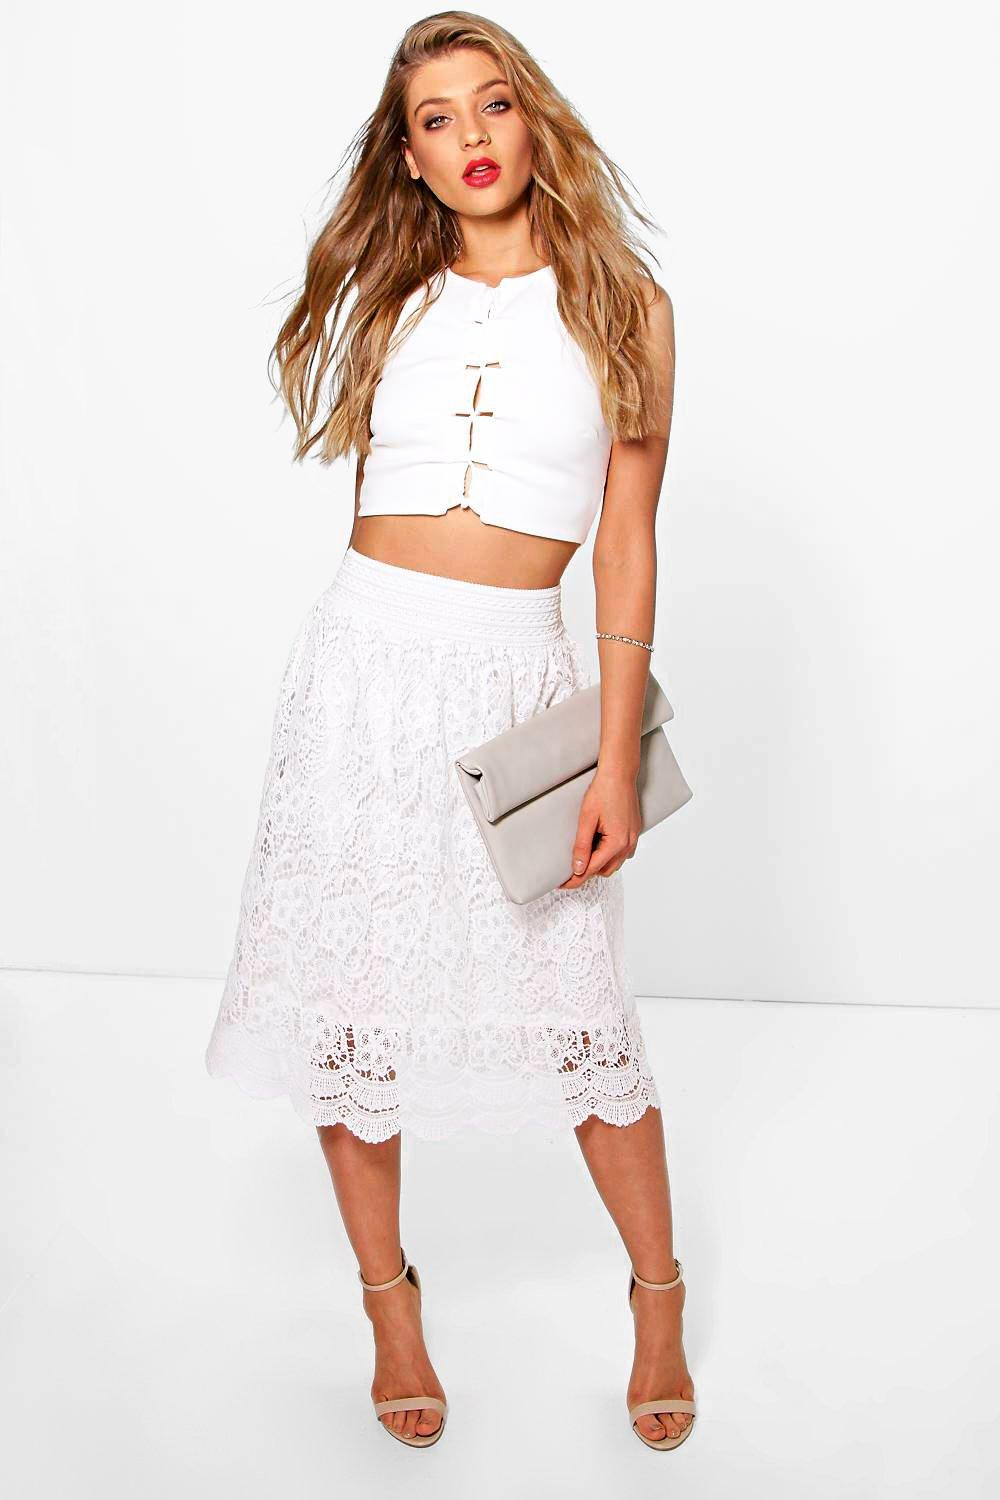 Lua Crochet Midi Skirt